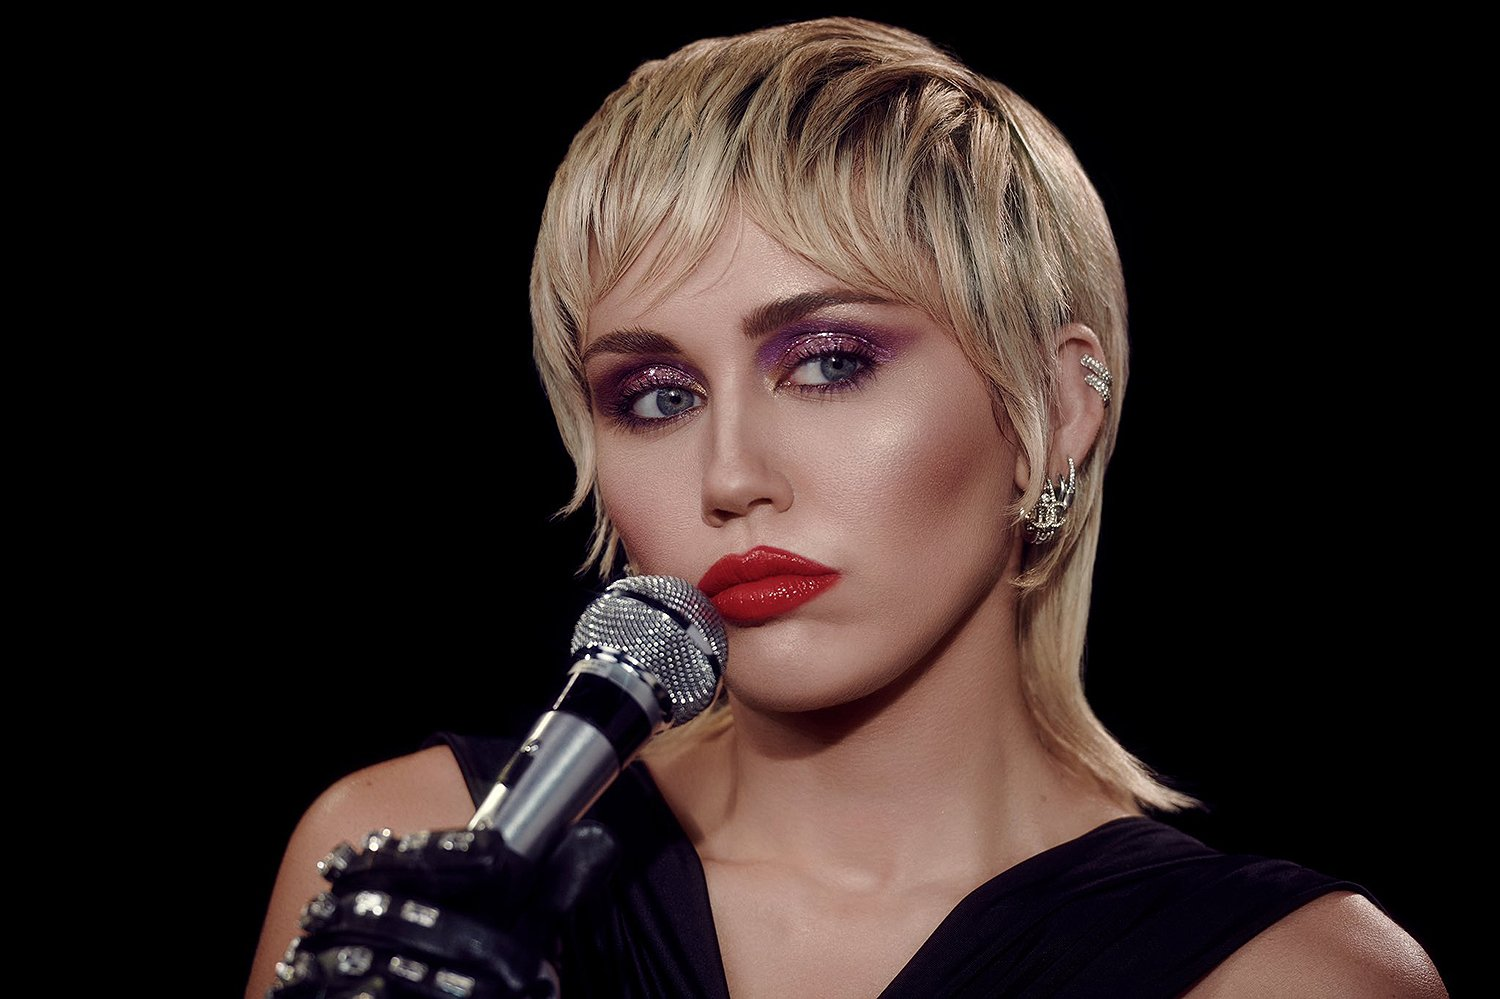 Miley Cyrus Prepared Like A 'Madwoman' For Her Super Bowl Performance – Details!